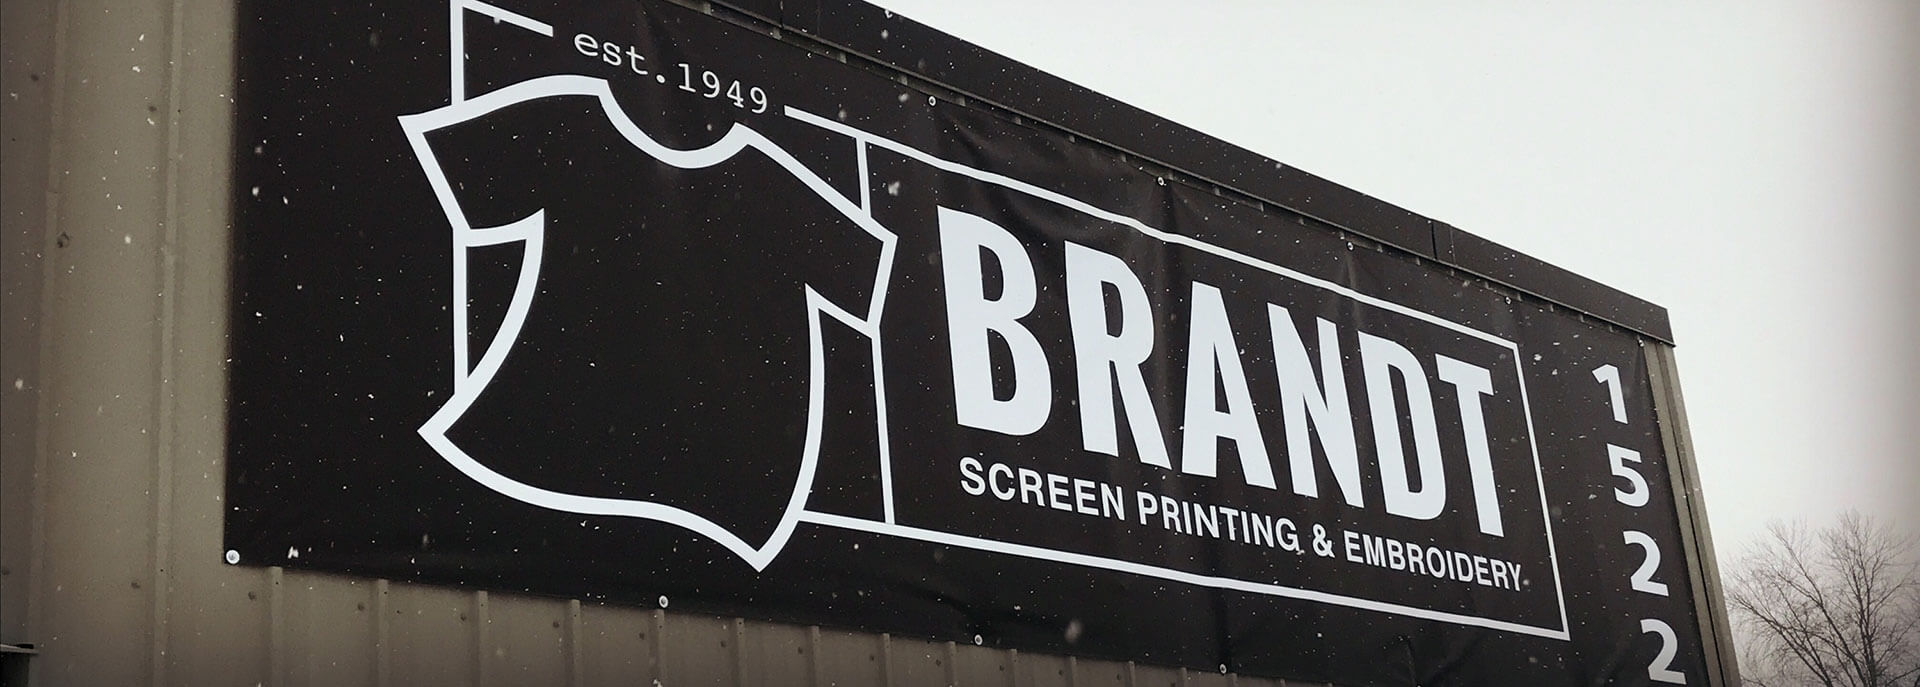 Contact Brandt Screen Printing & Embroidery